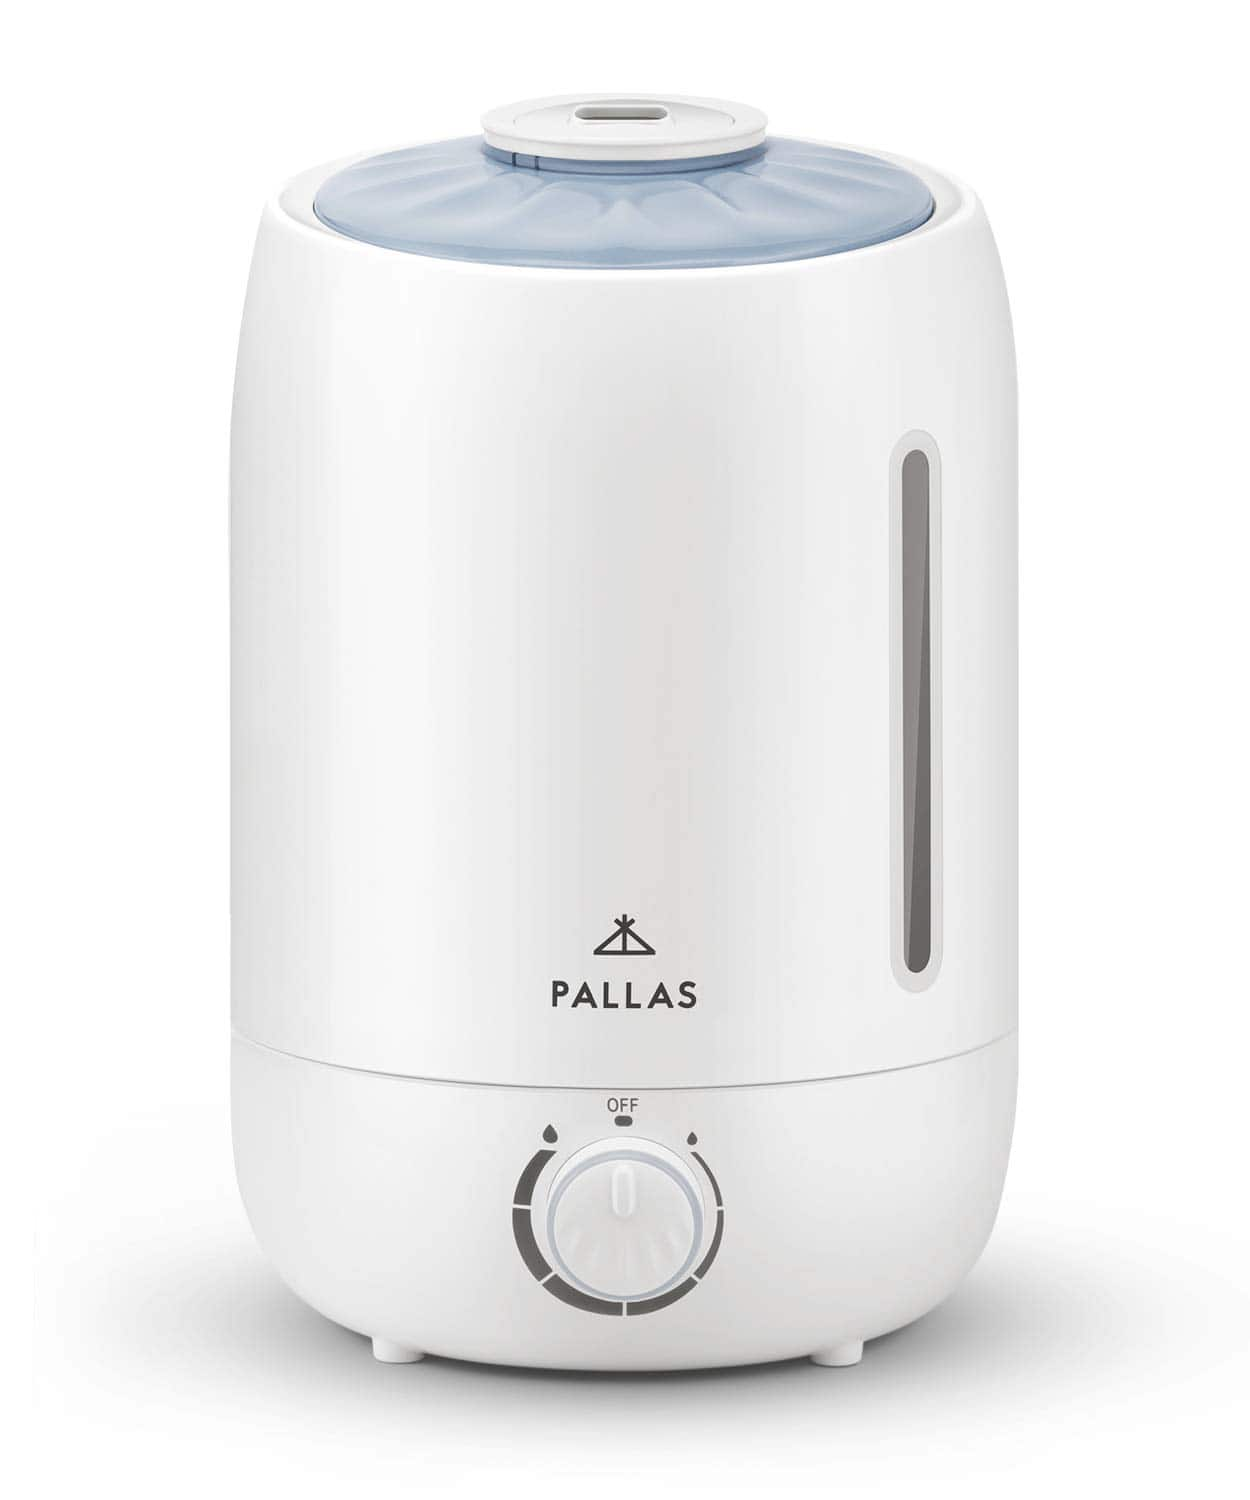 Cyber Monday countdown deals - Pallas 2019 Humidifier - 5L Cool Mist Ultrasonic Humidifier $19.99